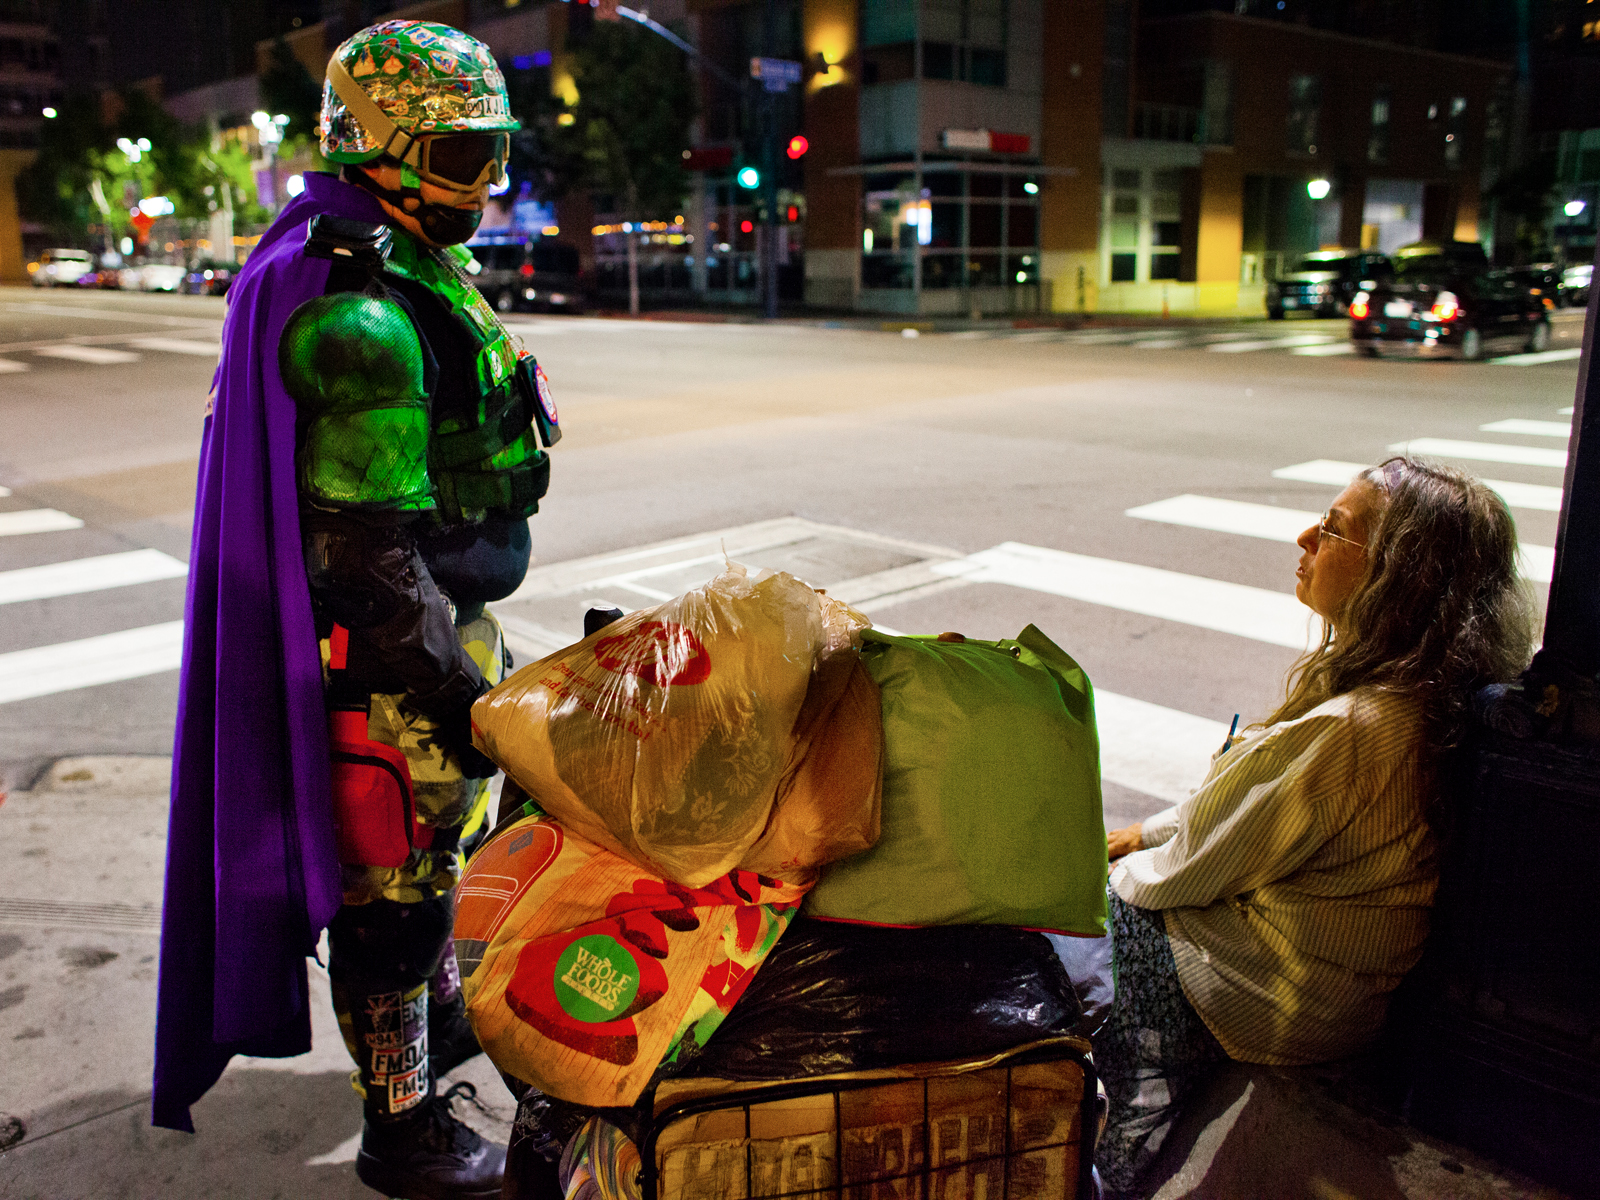 Mr. Xtreme is talking to a homeless women. Everytime she meets the superheroes, she claims to have been robbed seconds ago. A lot of the homeless people are mentally ill.